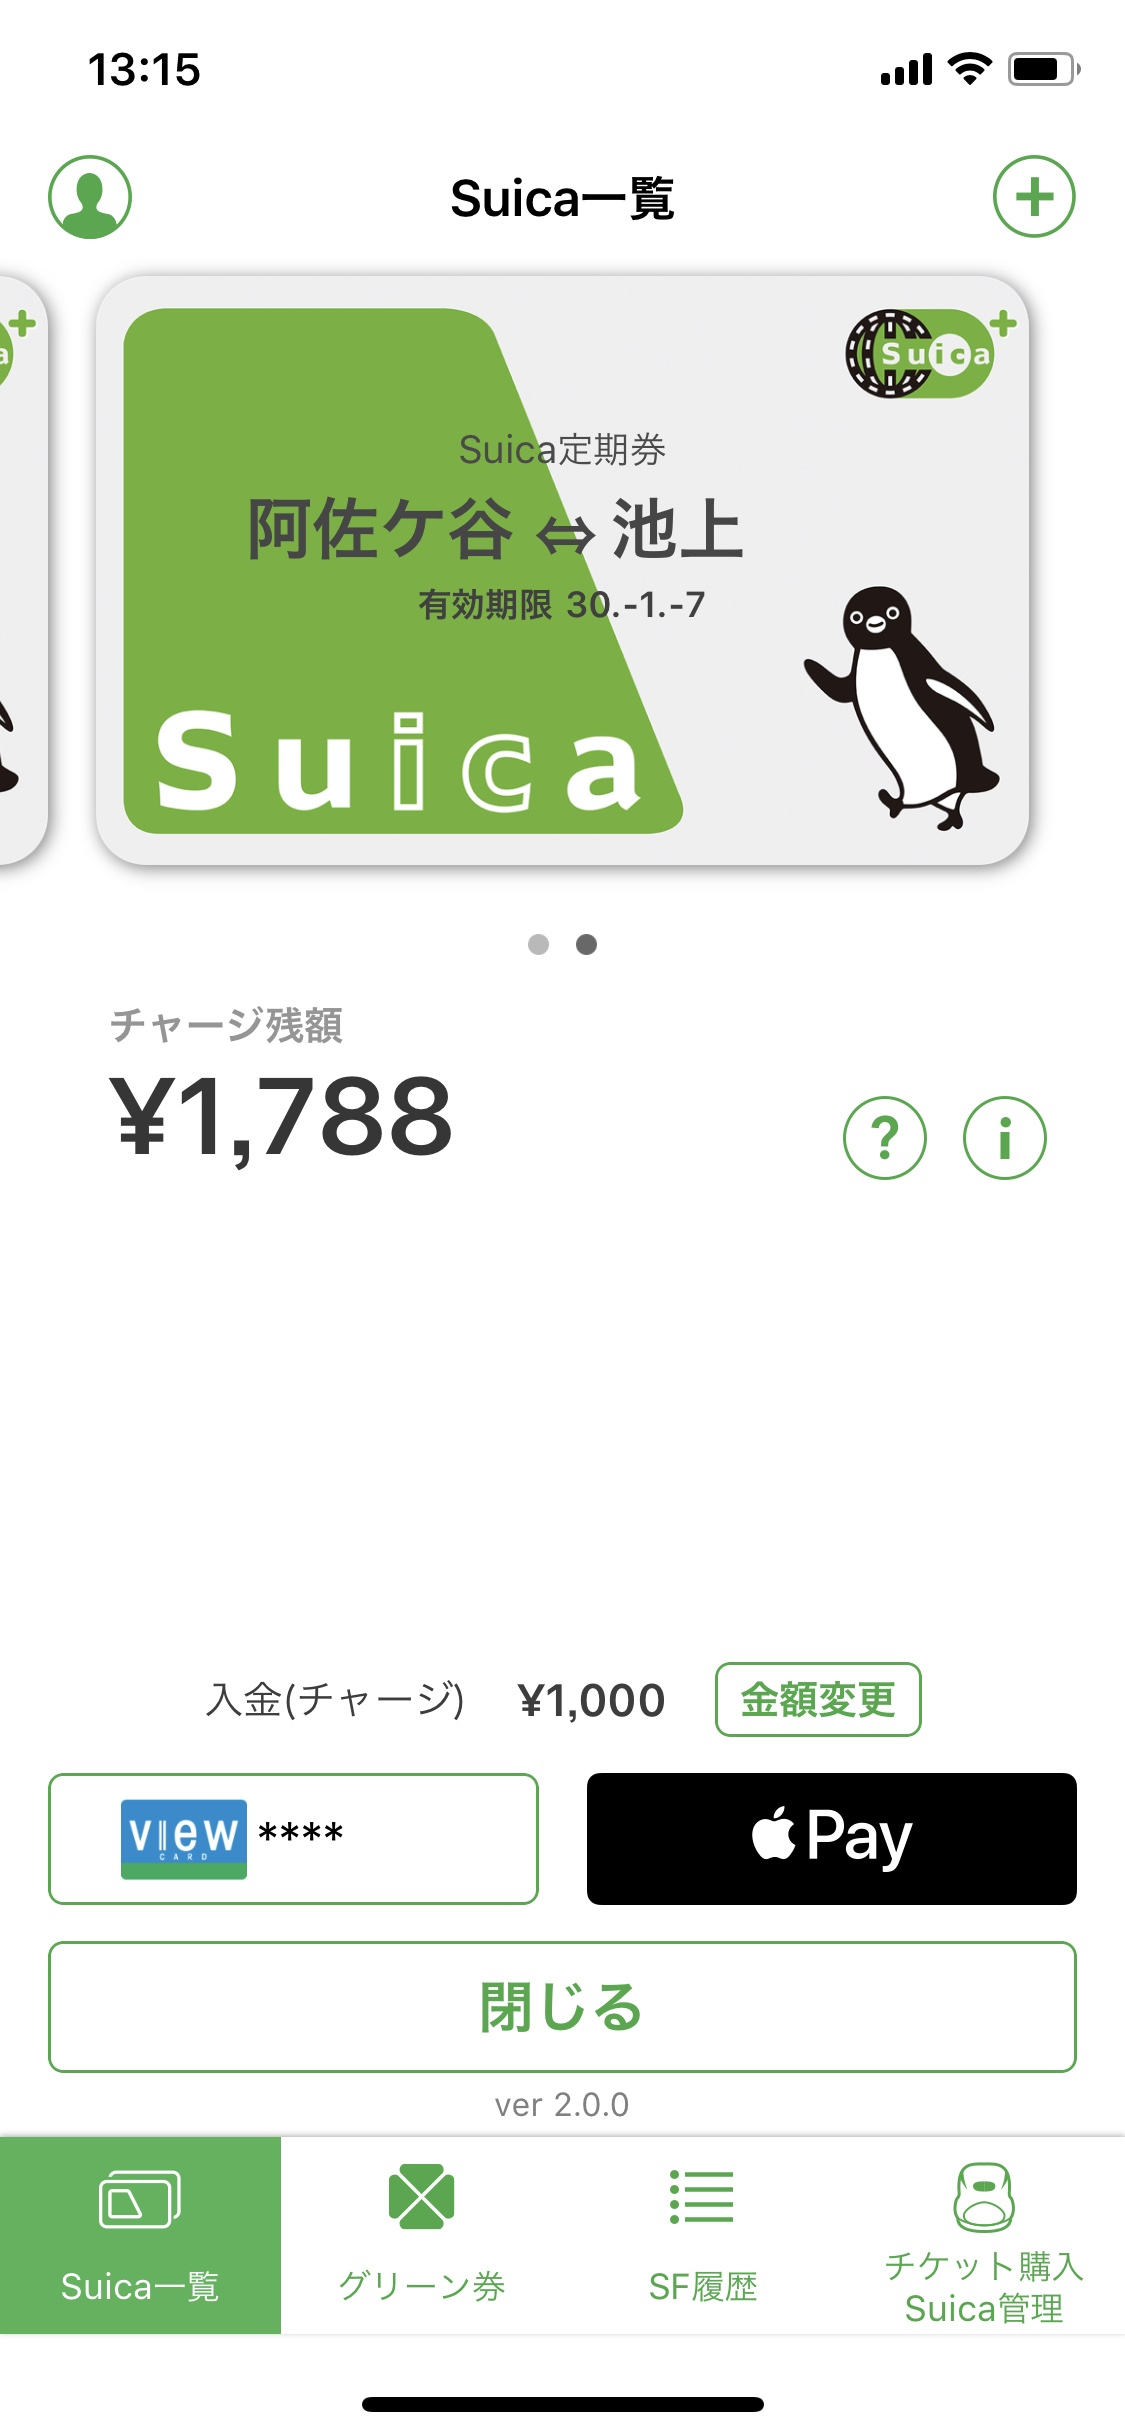 When added, the Suica App credit card appears in the recharge option next to Apple Pay